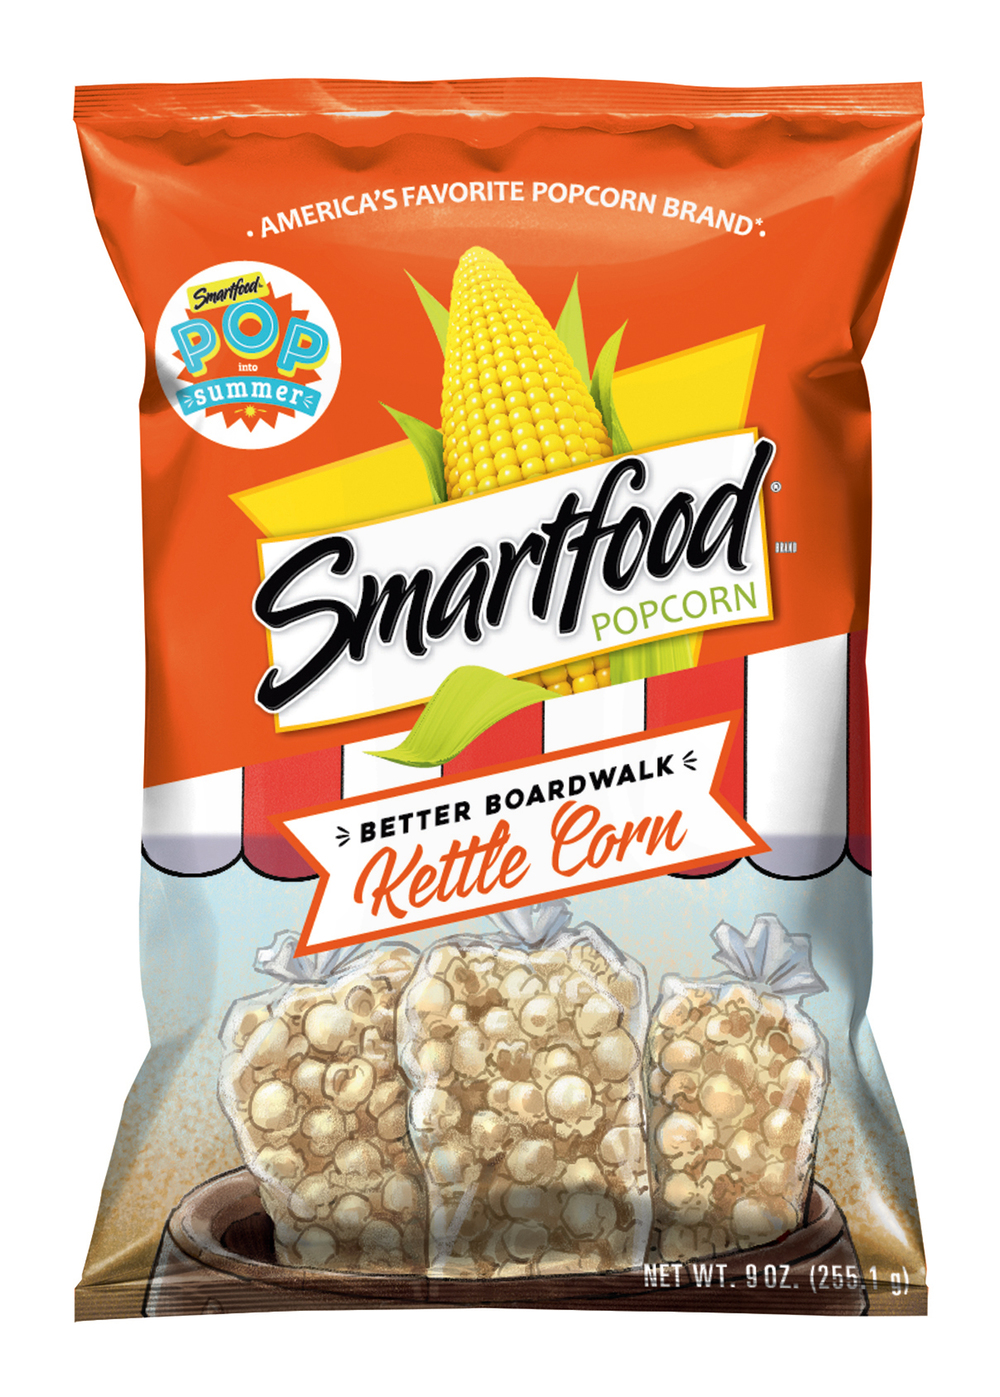 CD16453_Smartfood_SummerOfPopcorn_PACKAGING_V1_KETTLECORN_JB01.jpg